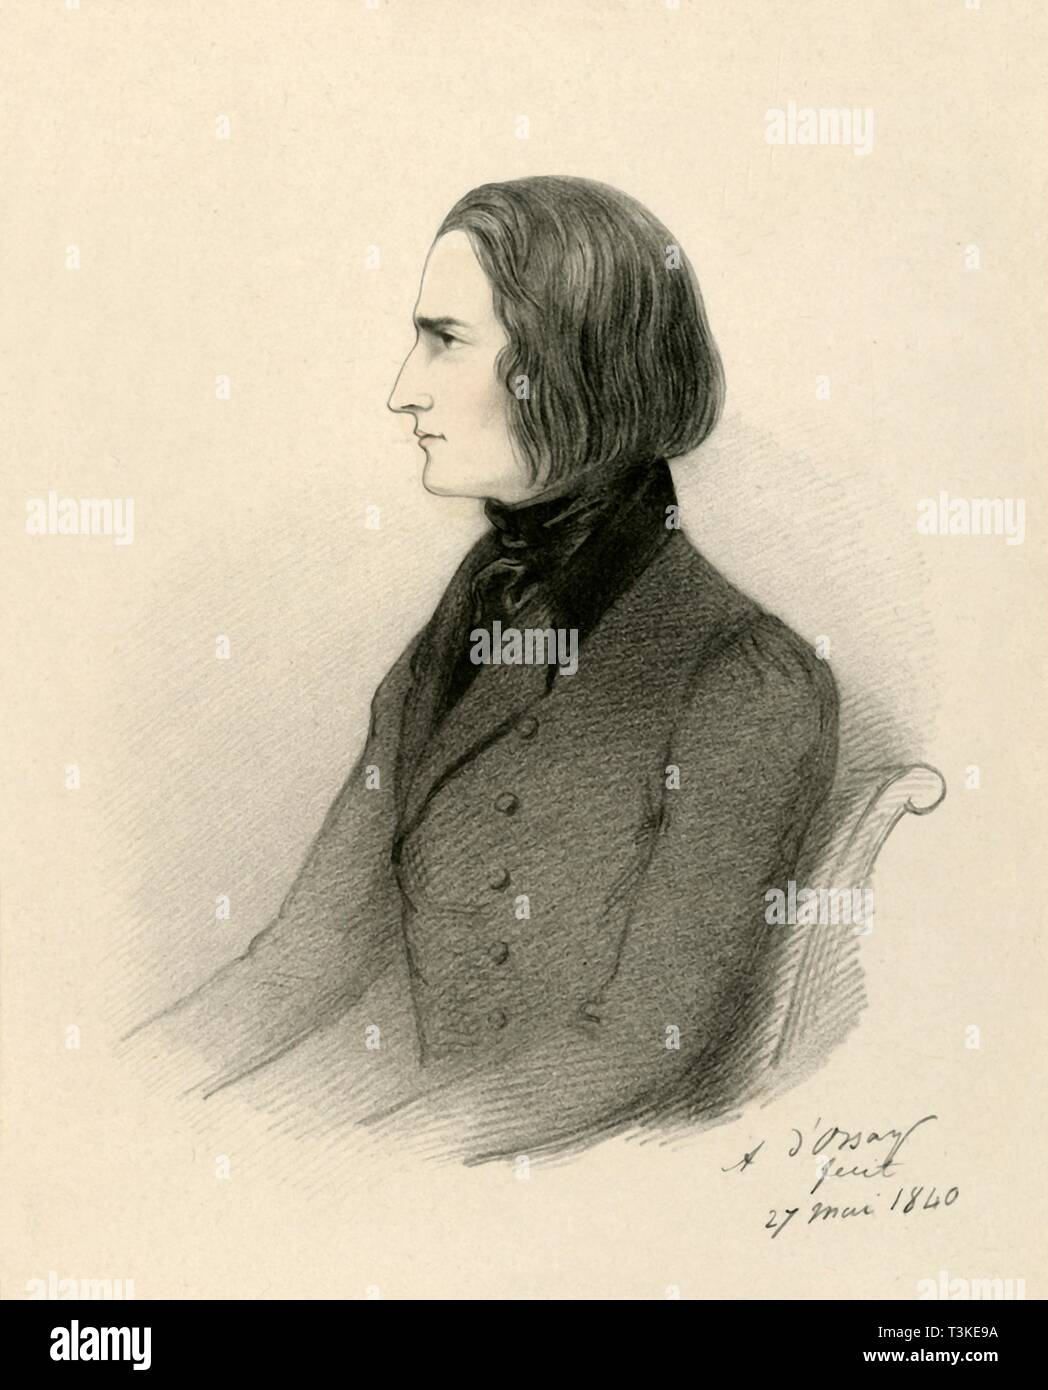 """'F. Liszt', 1840. Portrait of Hungarian pianist and composer Franz Liszt (1811-1886). From """"Portraits by Count D'Orsay"""", an album assembled by Lady Georgiana Codrington. [1850s] - Stock Image"""